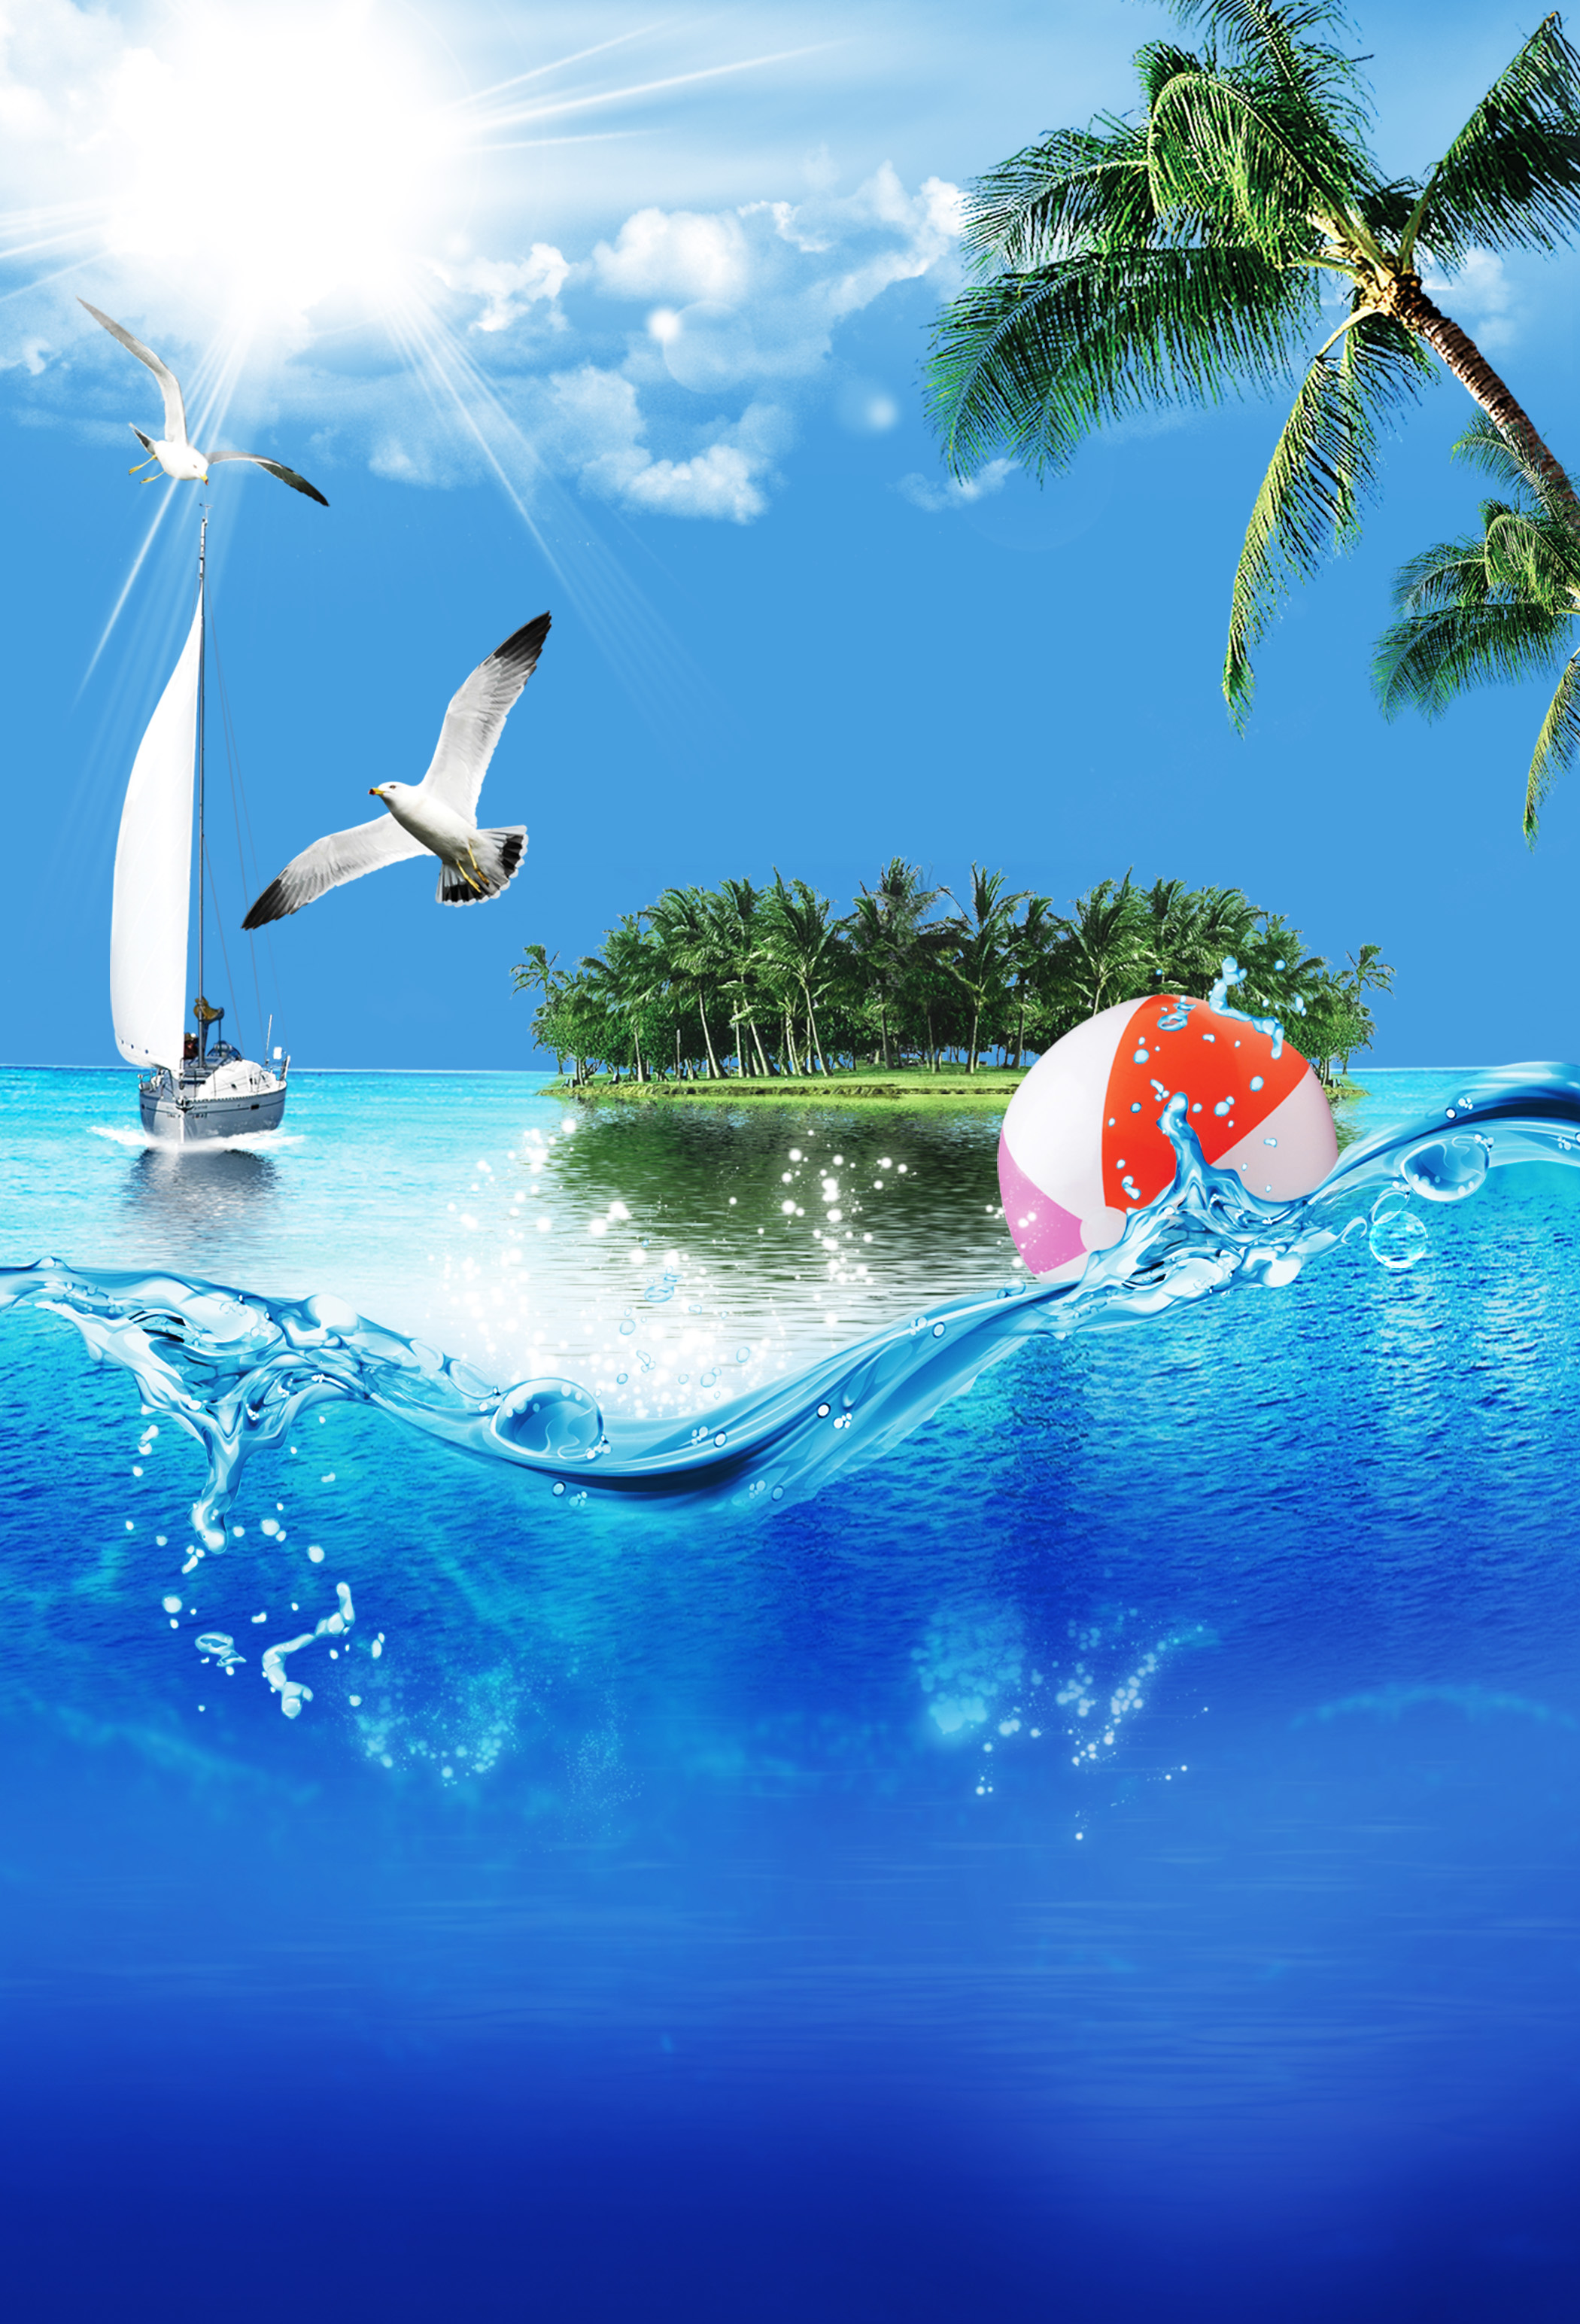 great seaside party poster  seabirds  sea  island background image for free download